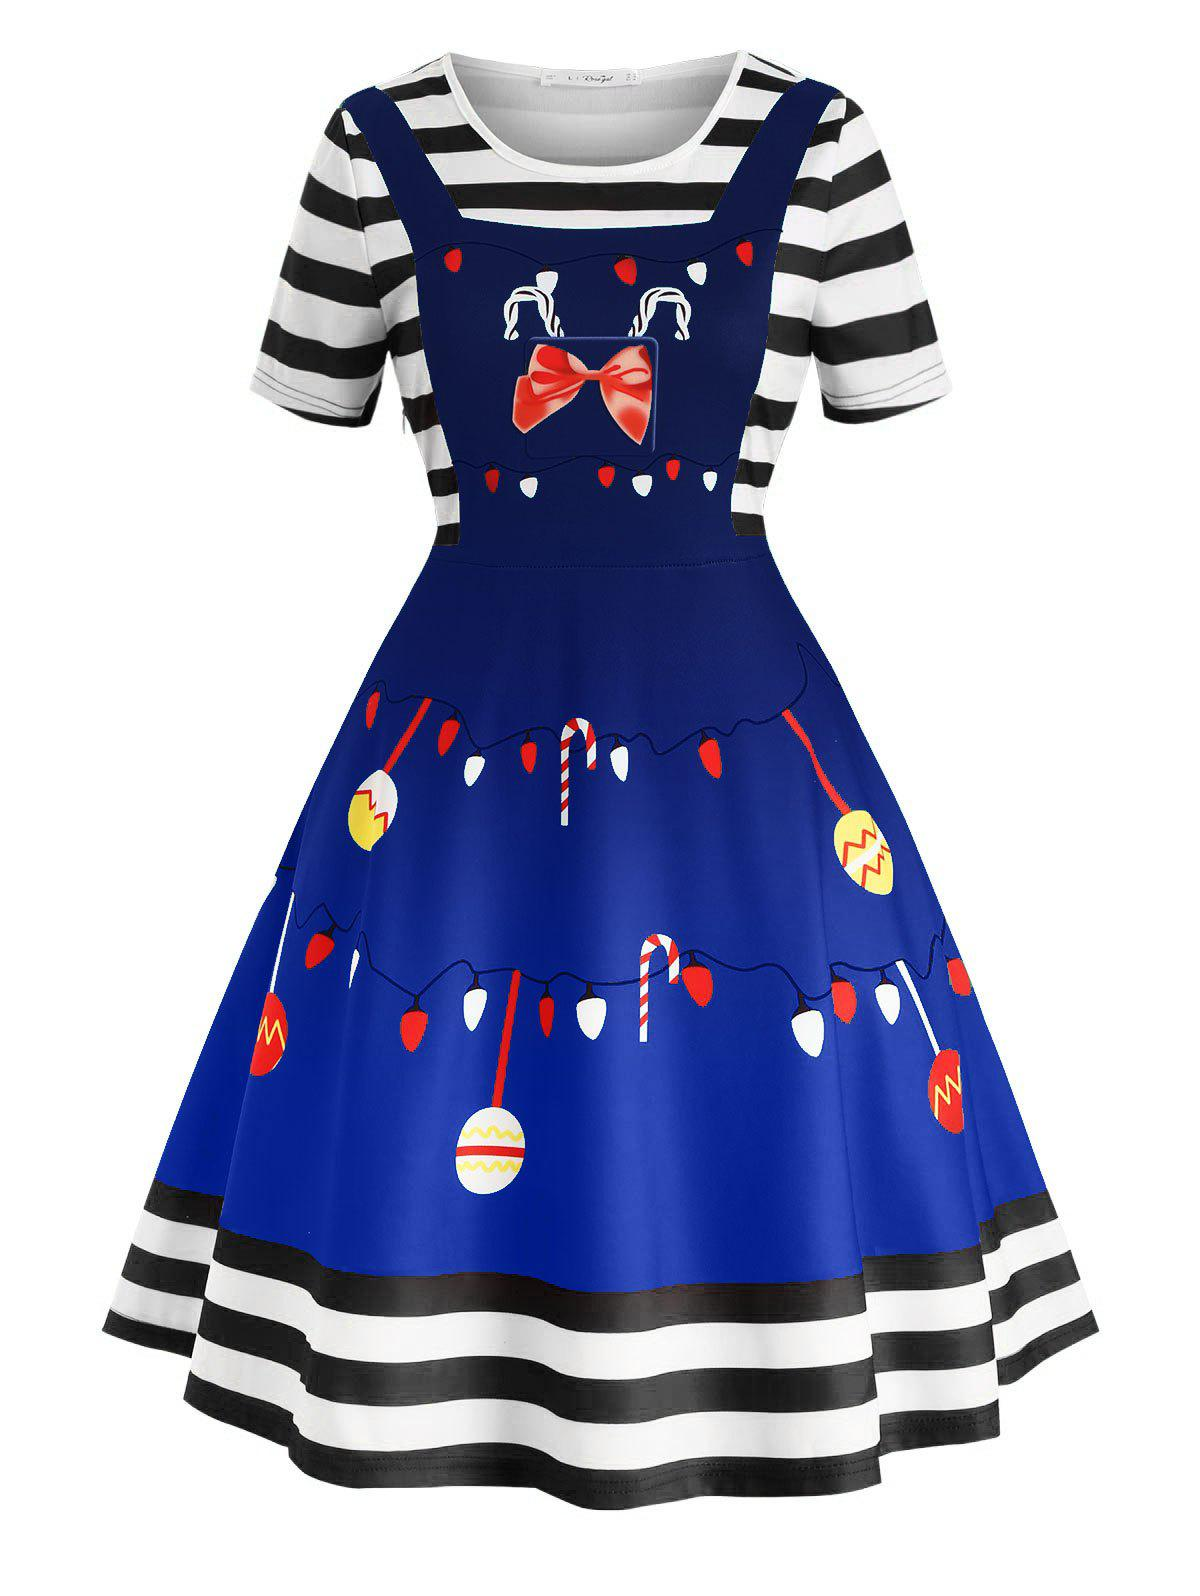 Plus Size Vintage Christmas Print Fit and Flare Dress - BLUE 5X